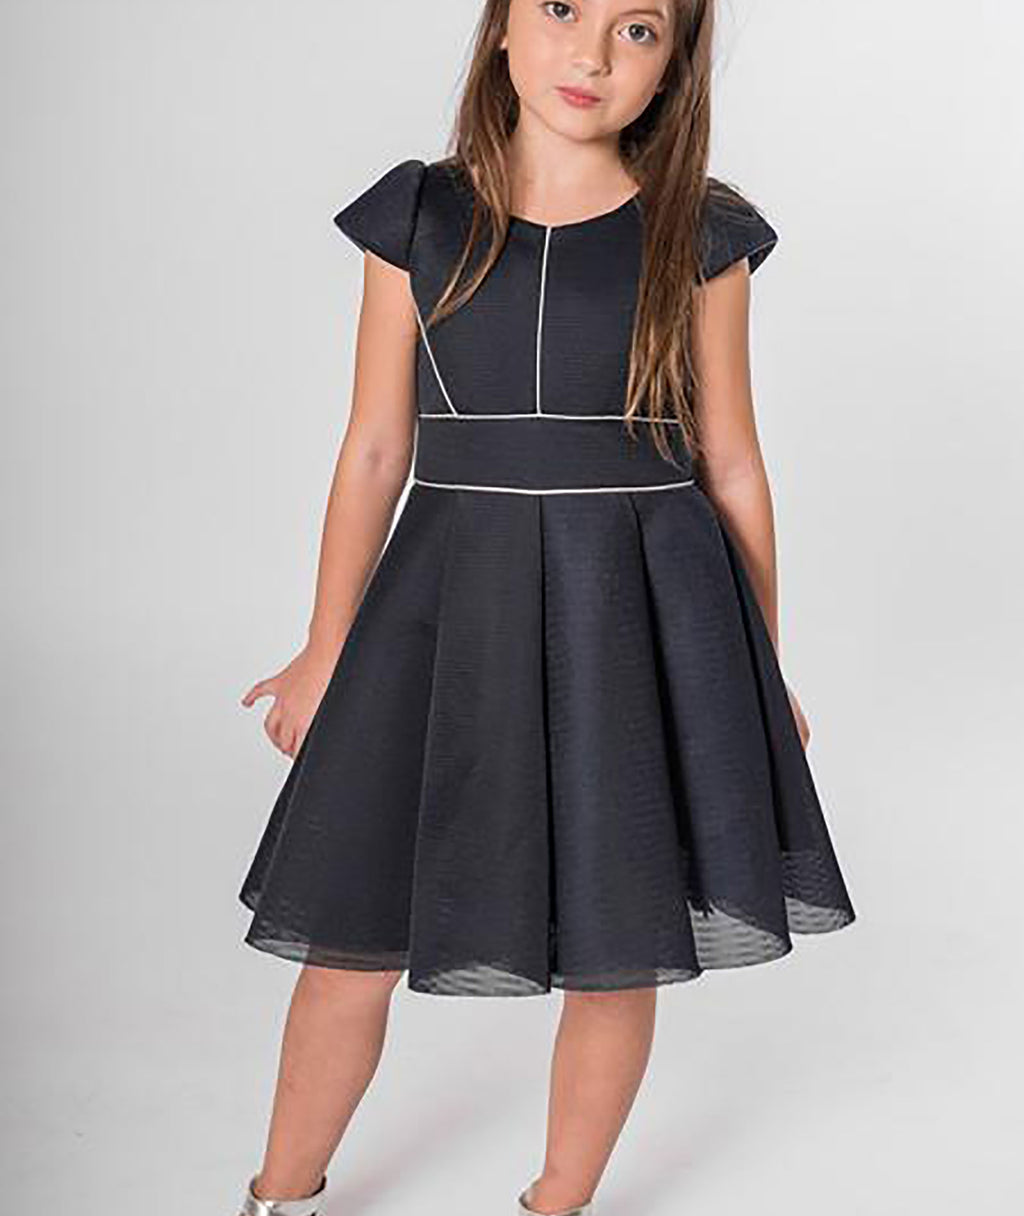 Zoe Ltd. Girls Piper Sleeve Navy Dress